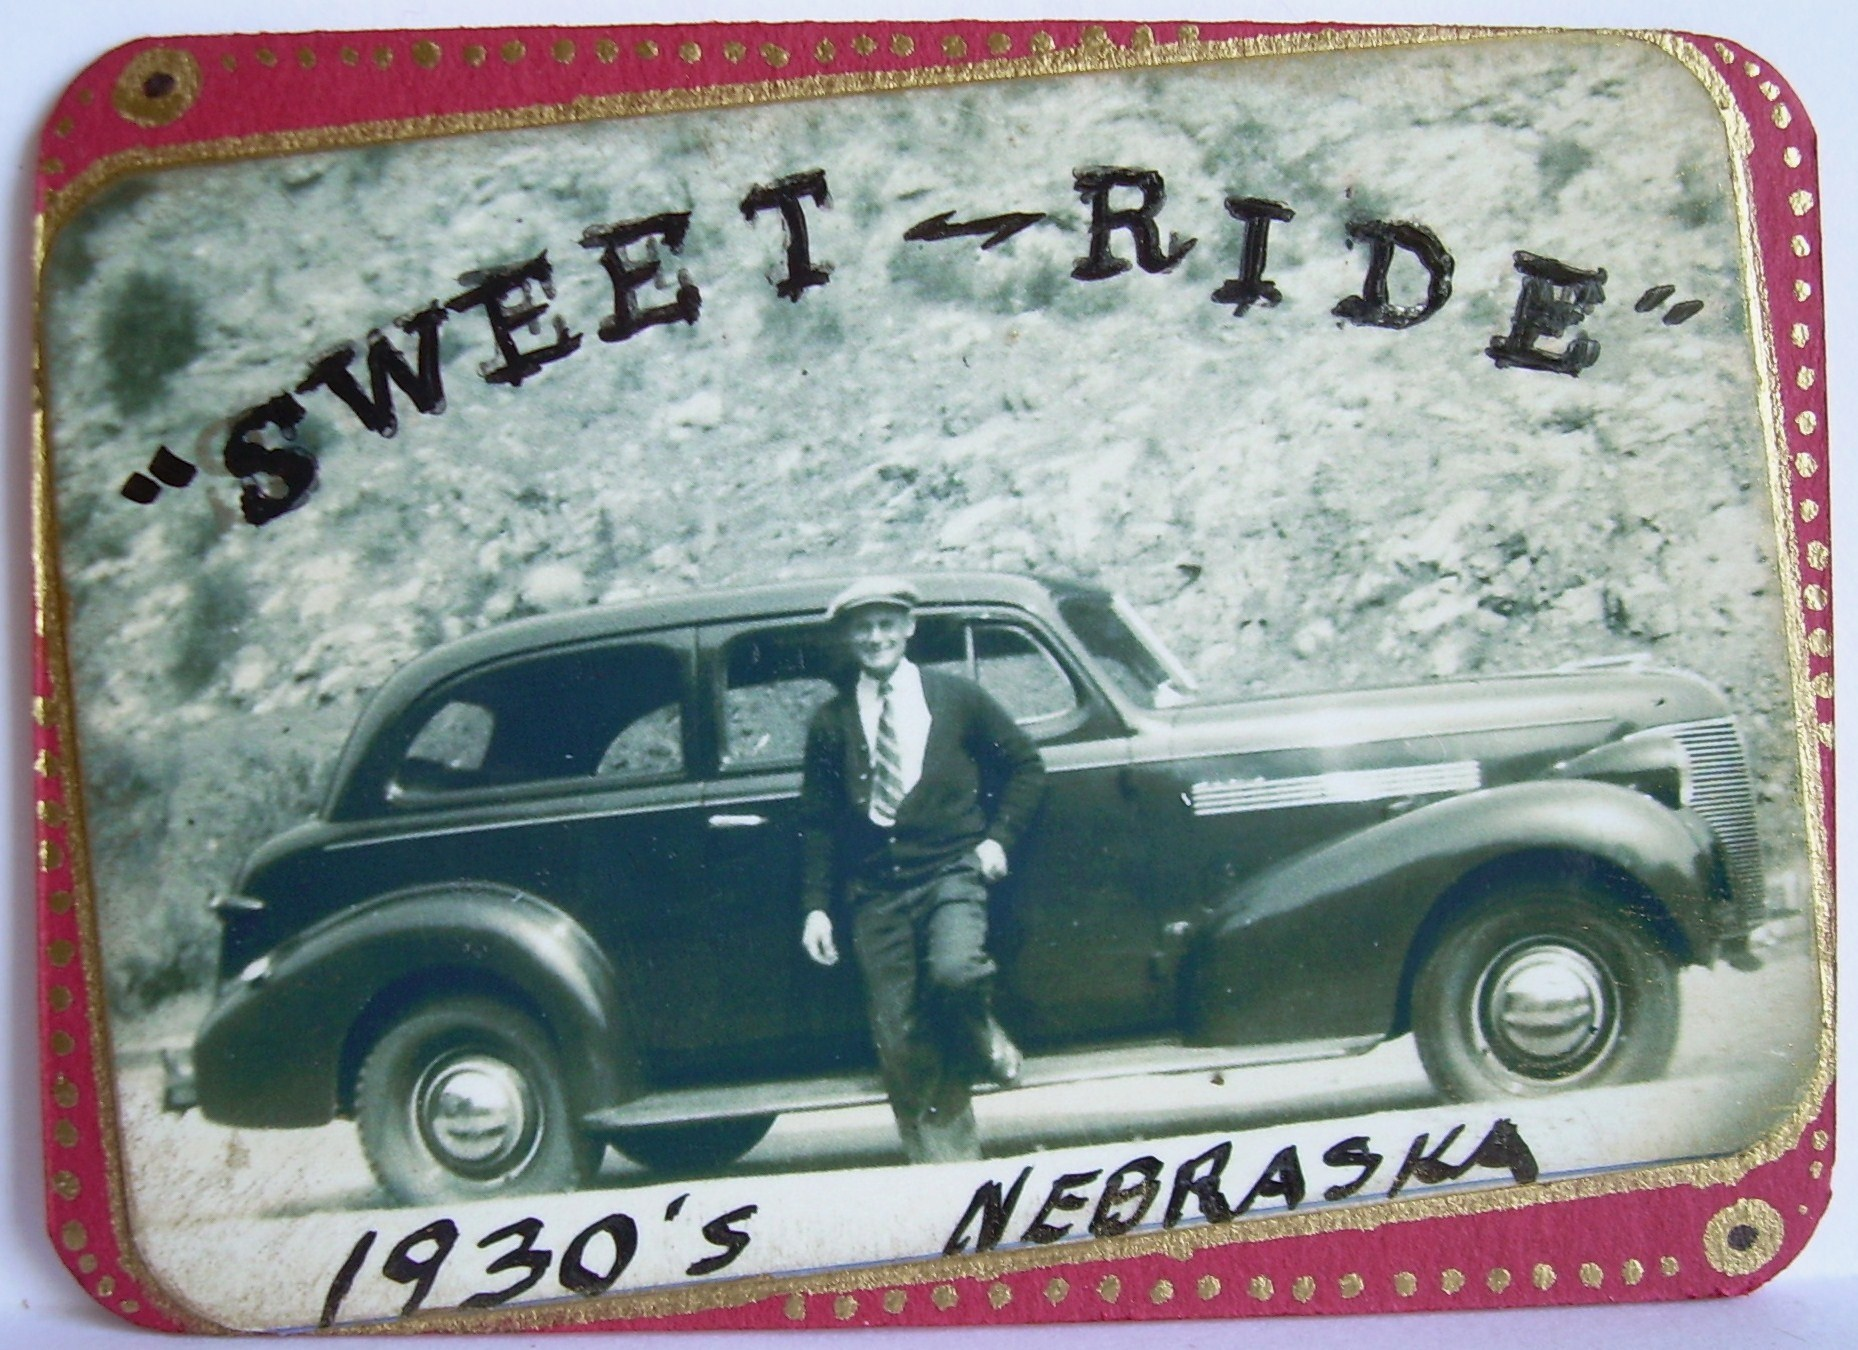 #7, Sweet Ride - 1930&#39;s Nebraska. ORIGINAL $5.00, shipping $1.00 